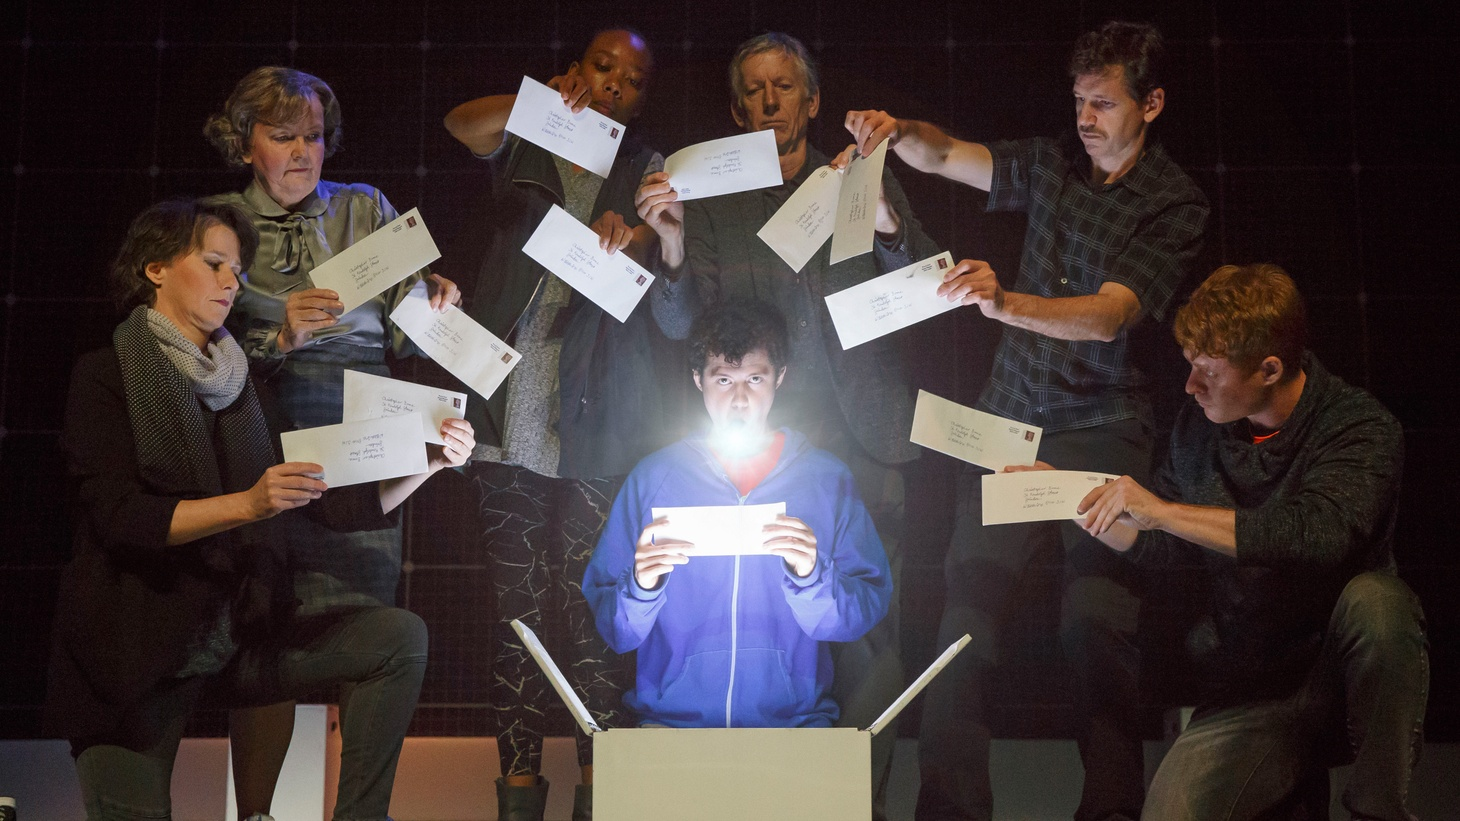 The Curious Incident of the Dog in the Night-Time doesn't so much tell you a story as it does allow you to sense the world through the lens of a 15-year-old boy, Christopher.